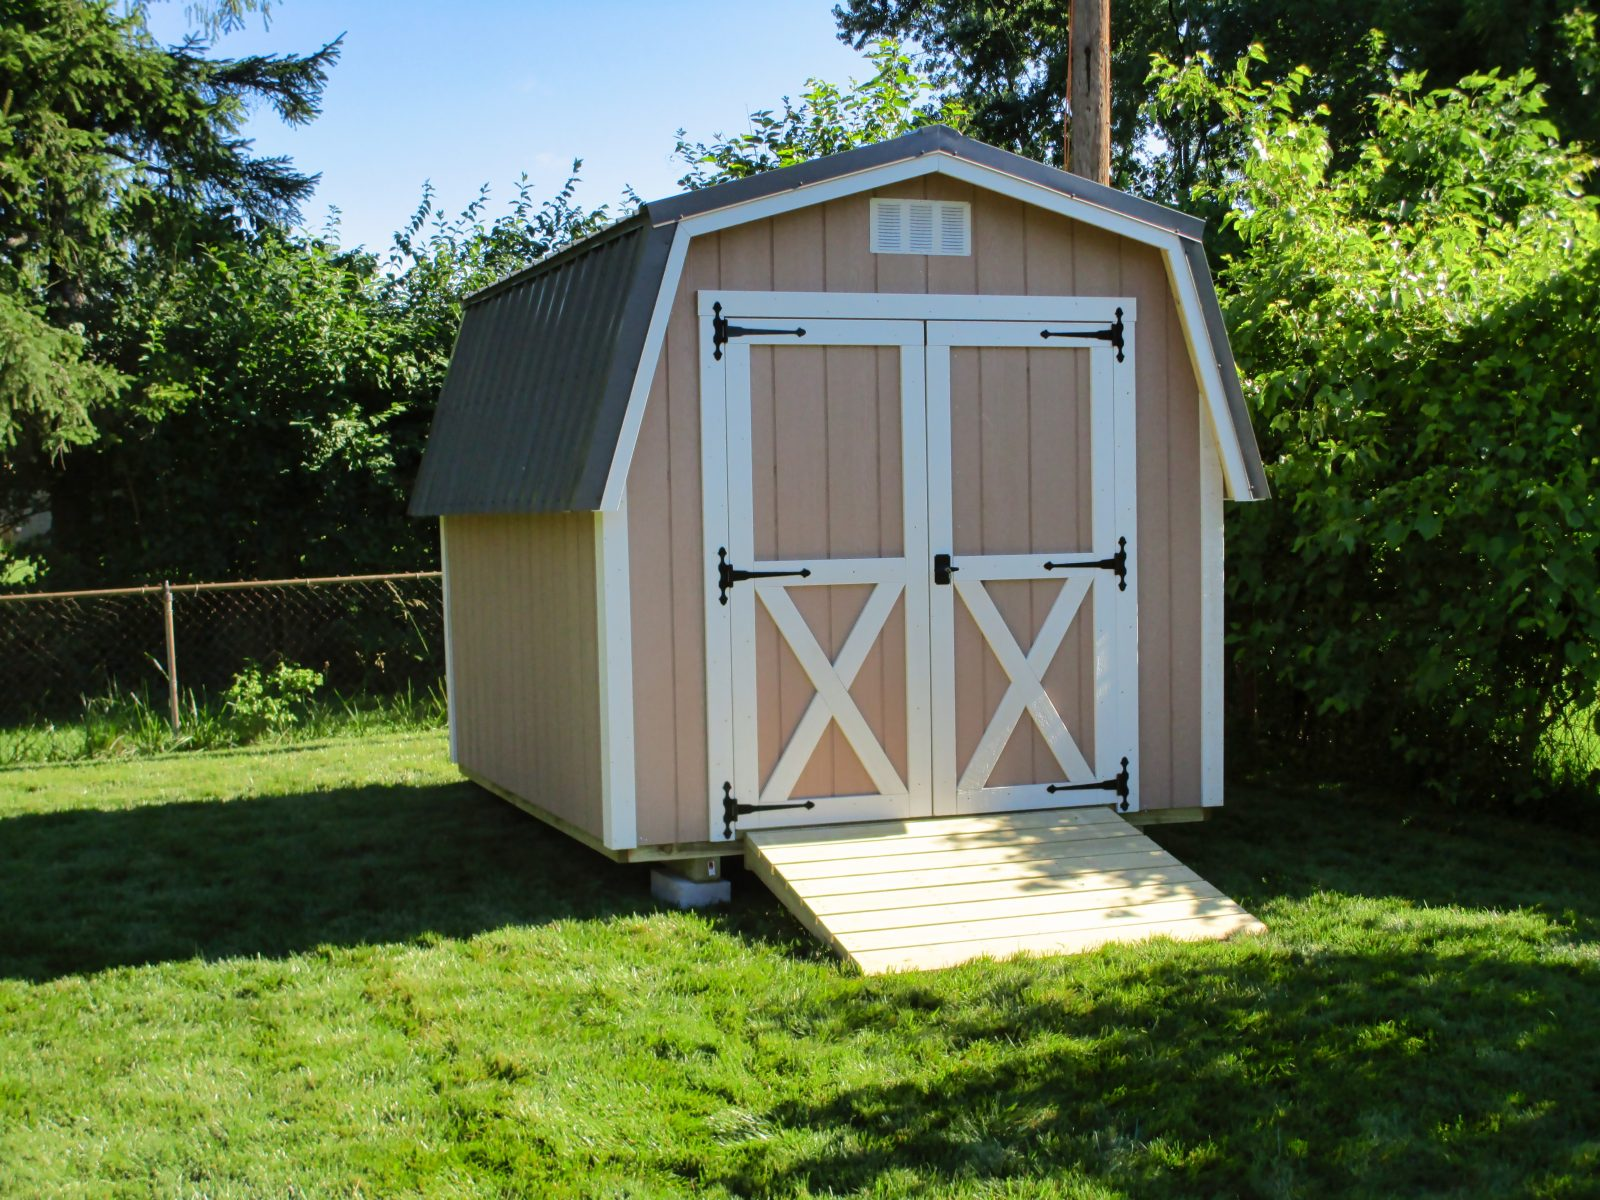 Classic Portable Sheds For Sale | Colombus, Dayton and